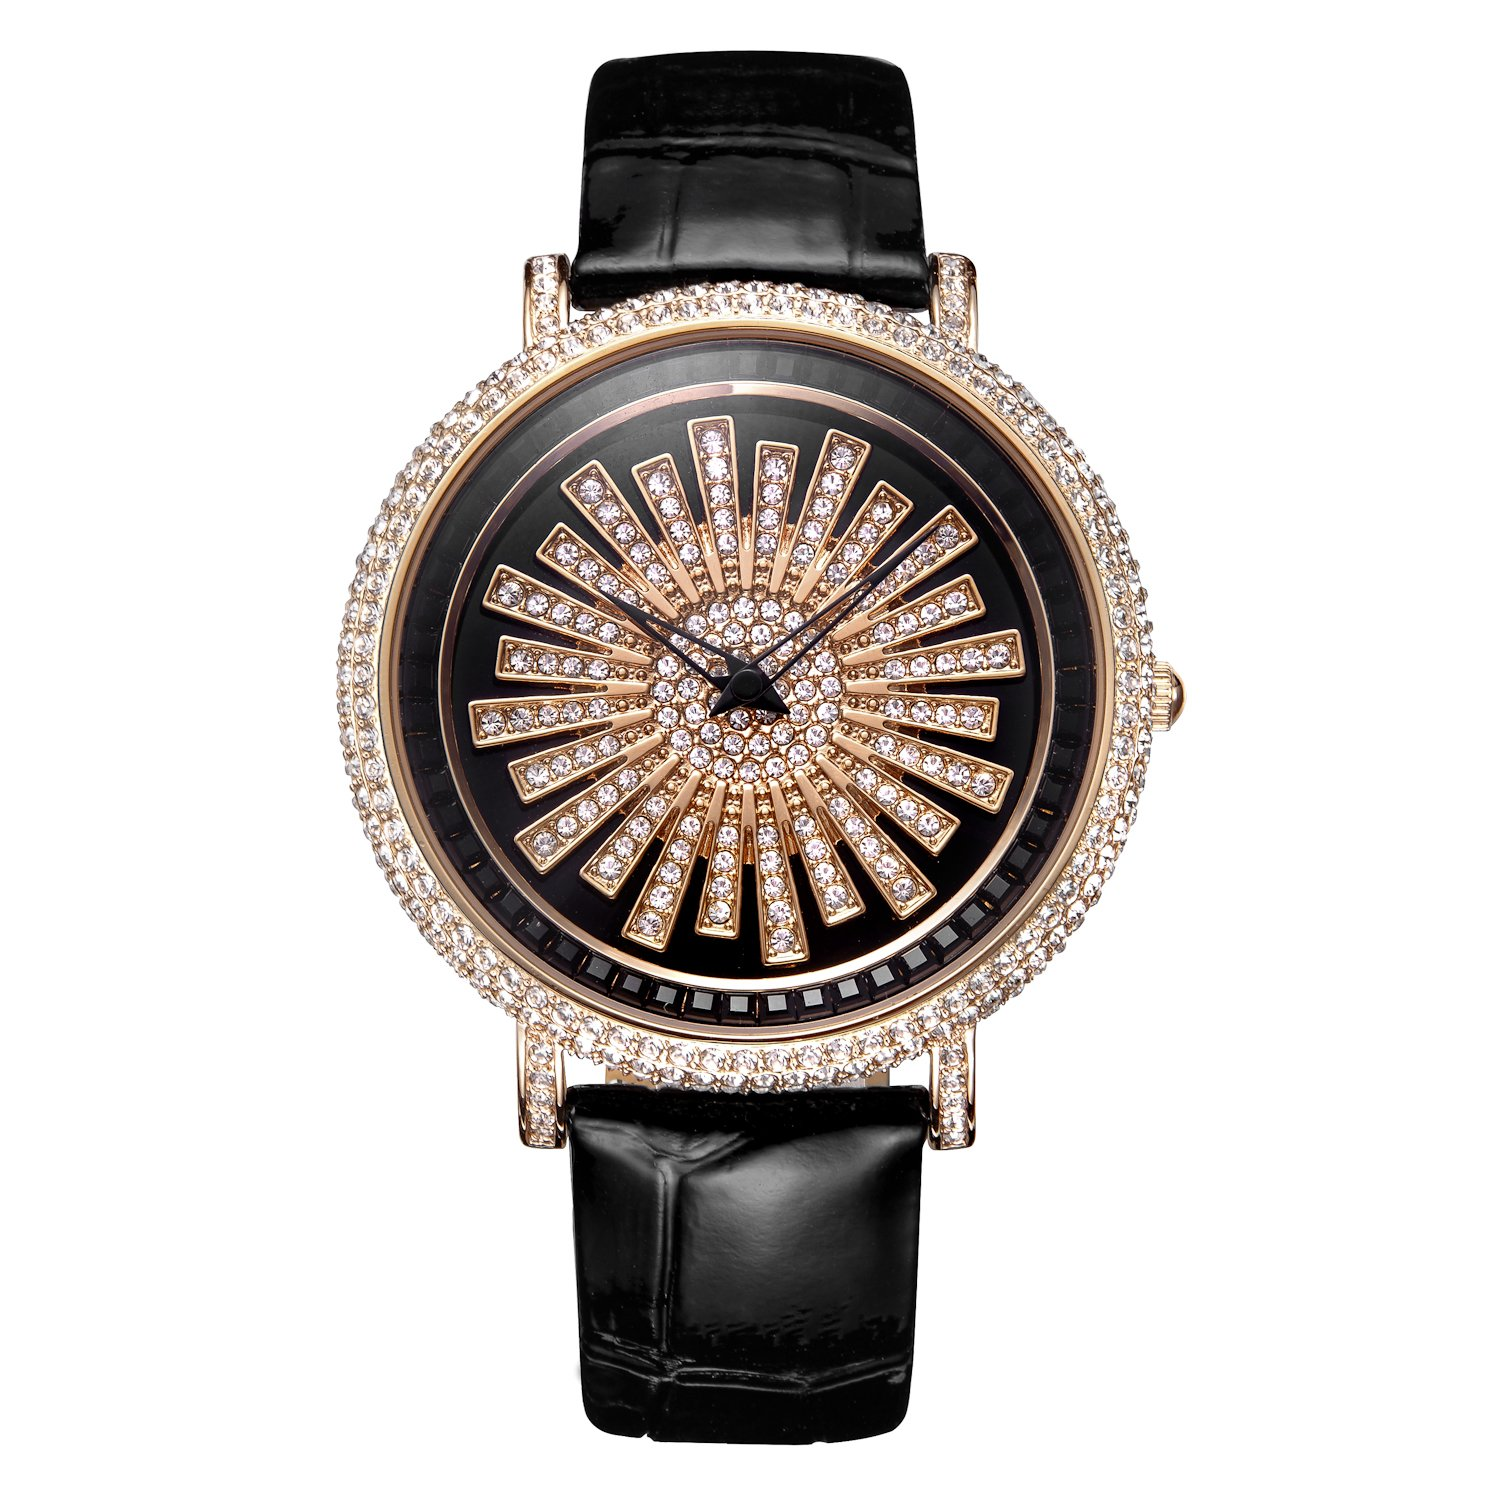 MATISSE Lady Austria Full Crystal Dial & Strap Business Fashion Quartz Wrist Watch (Rose gold and black leather strap)